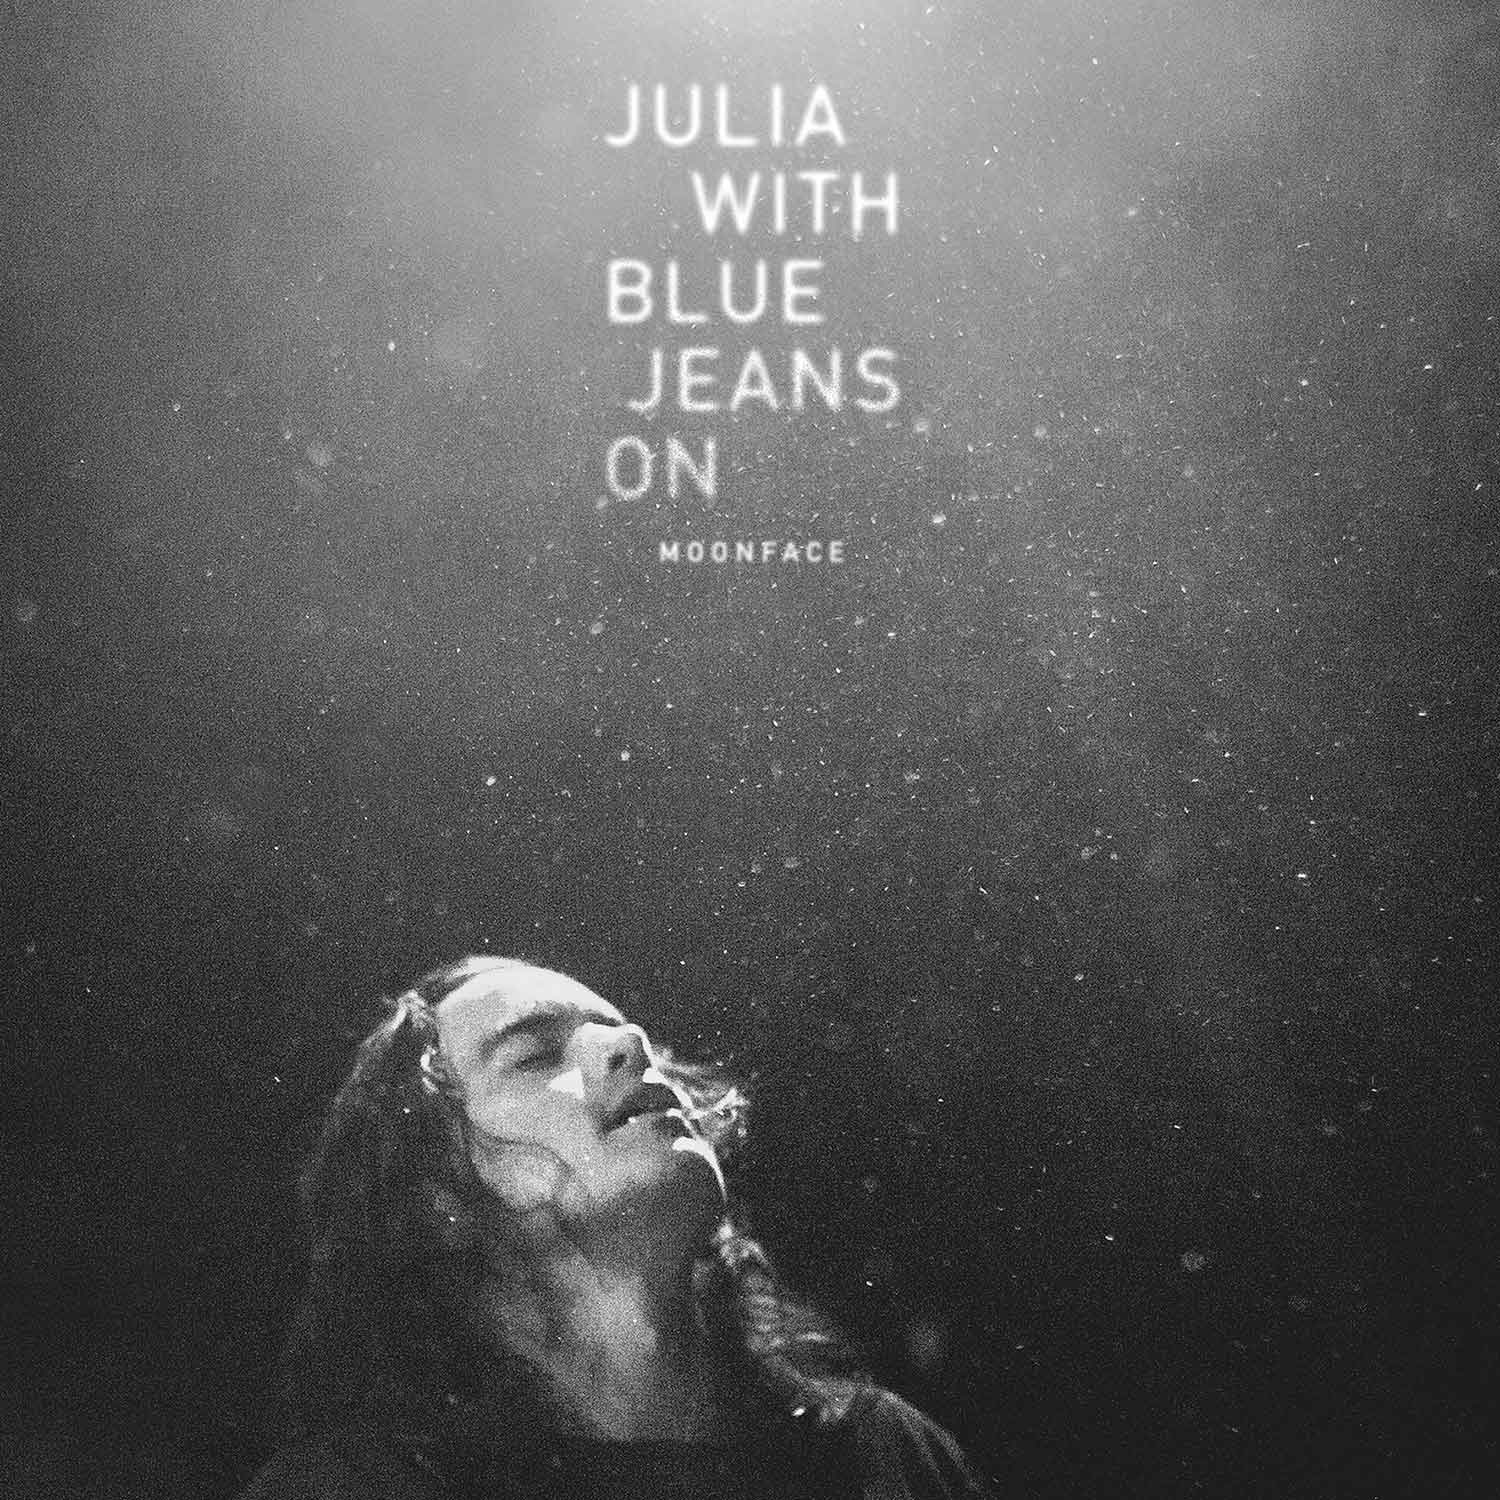 Moonface - Julia With Blue Jeans On. Design: Tero Ahonen